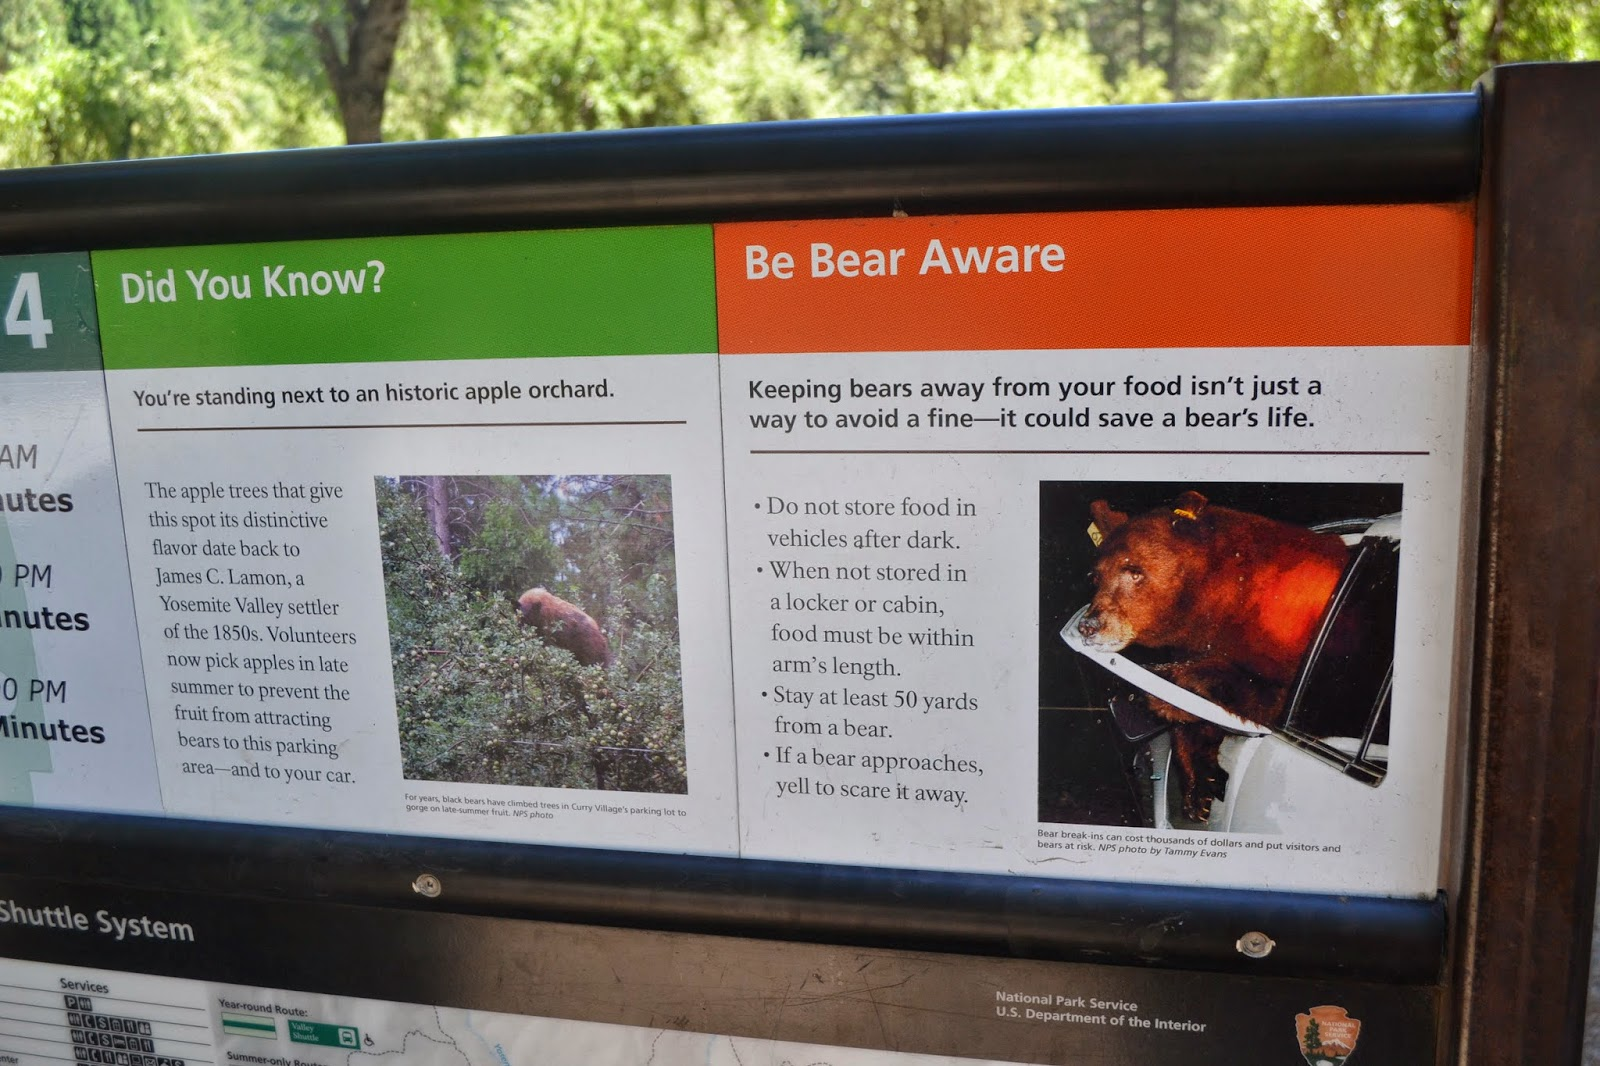 Be Bear Aware sign in Curry Village, Yosemite